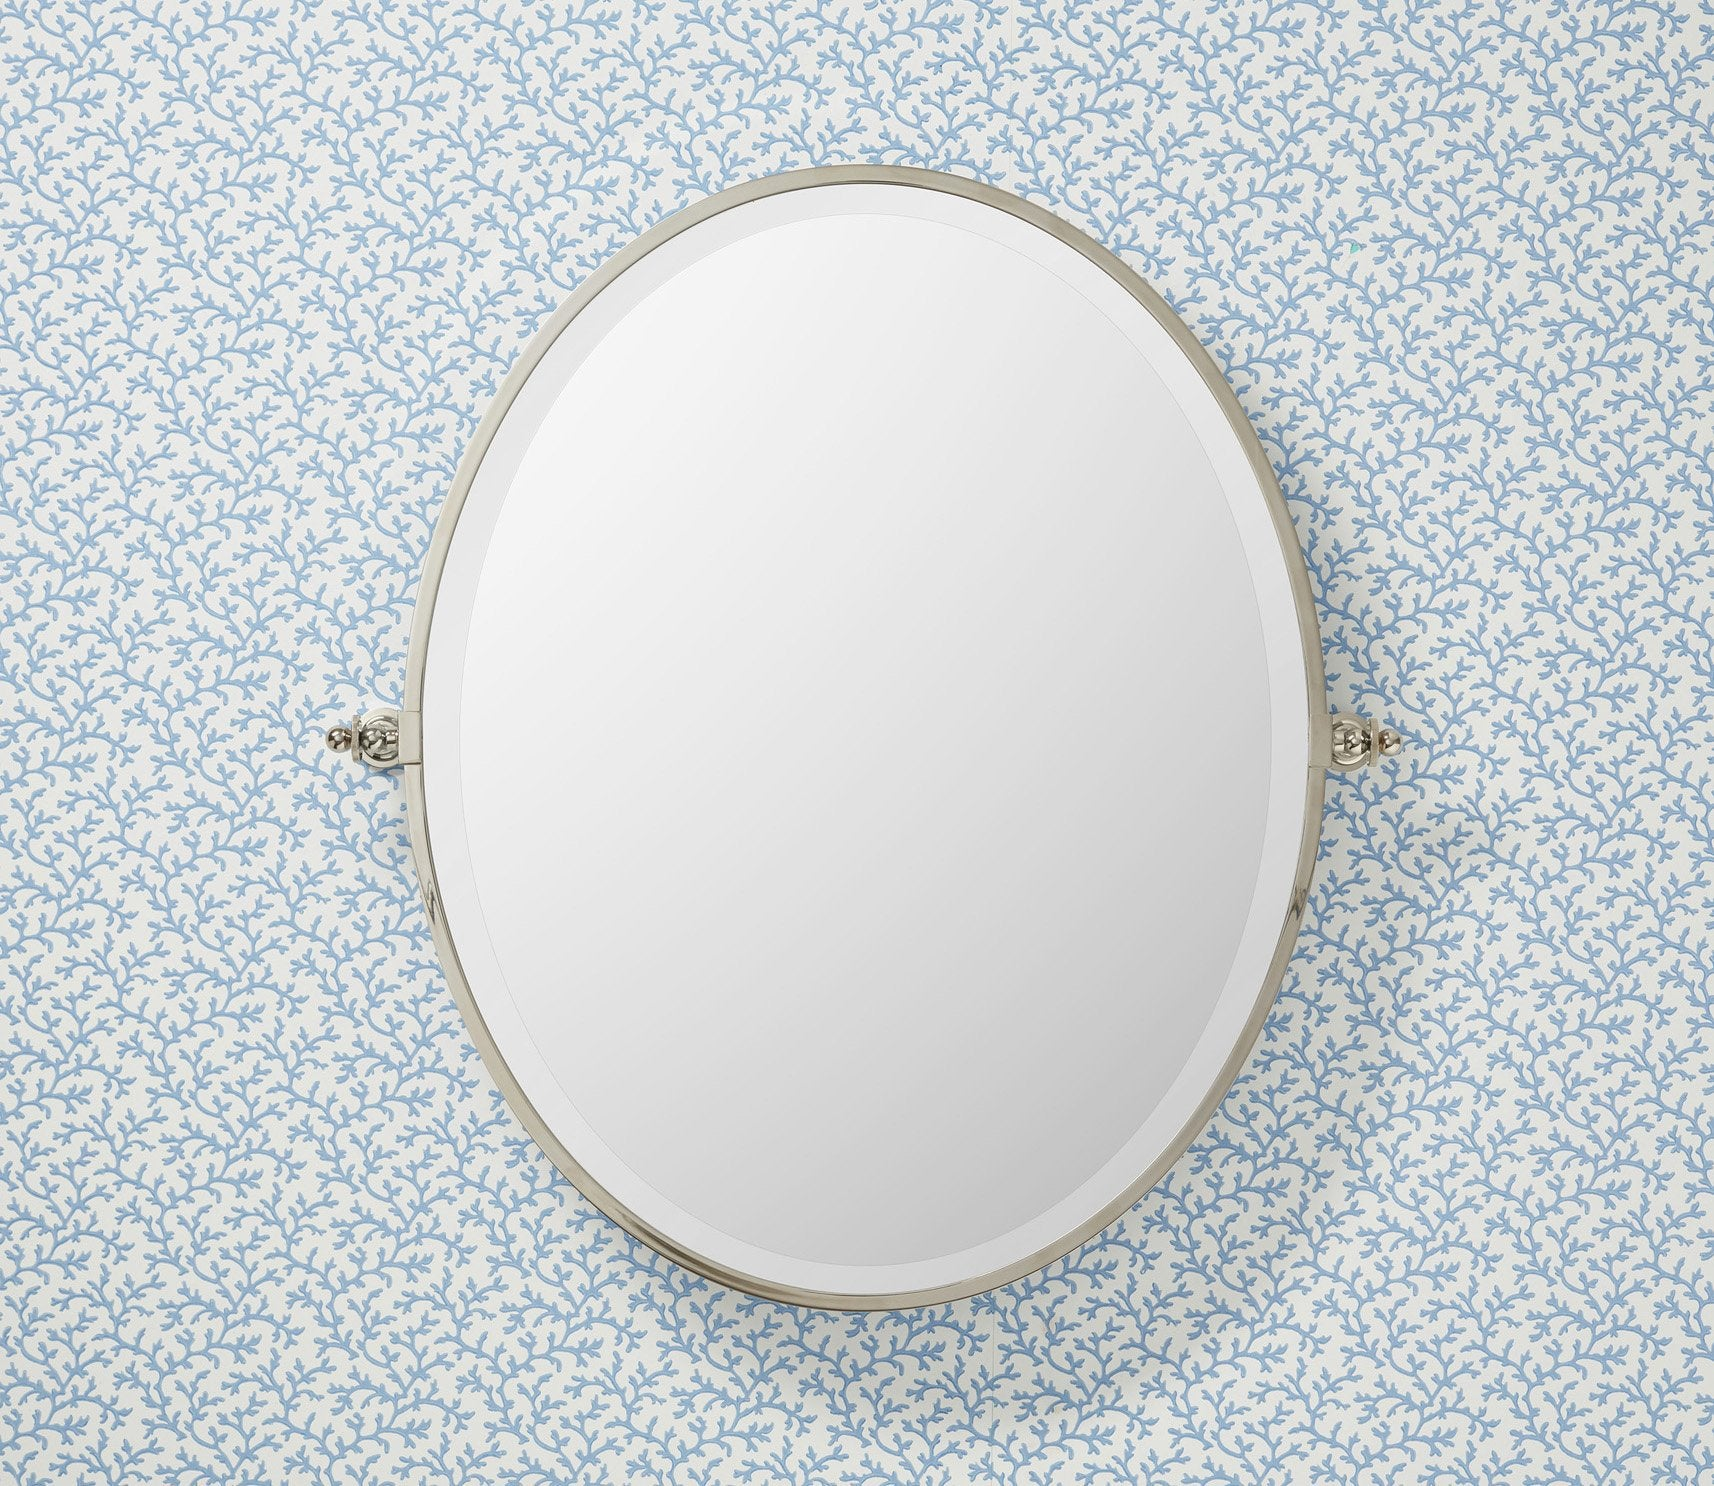 Hanbury Oval Tilting Mirror Product Image 1